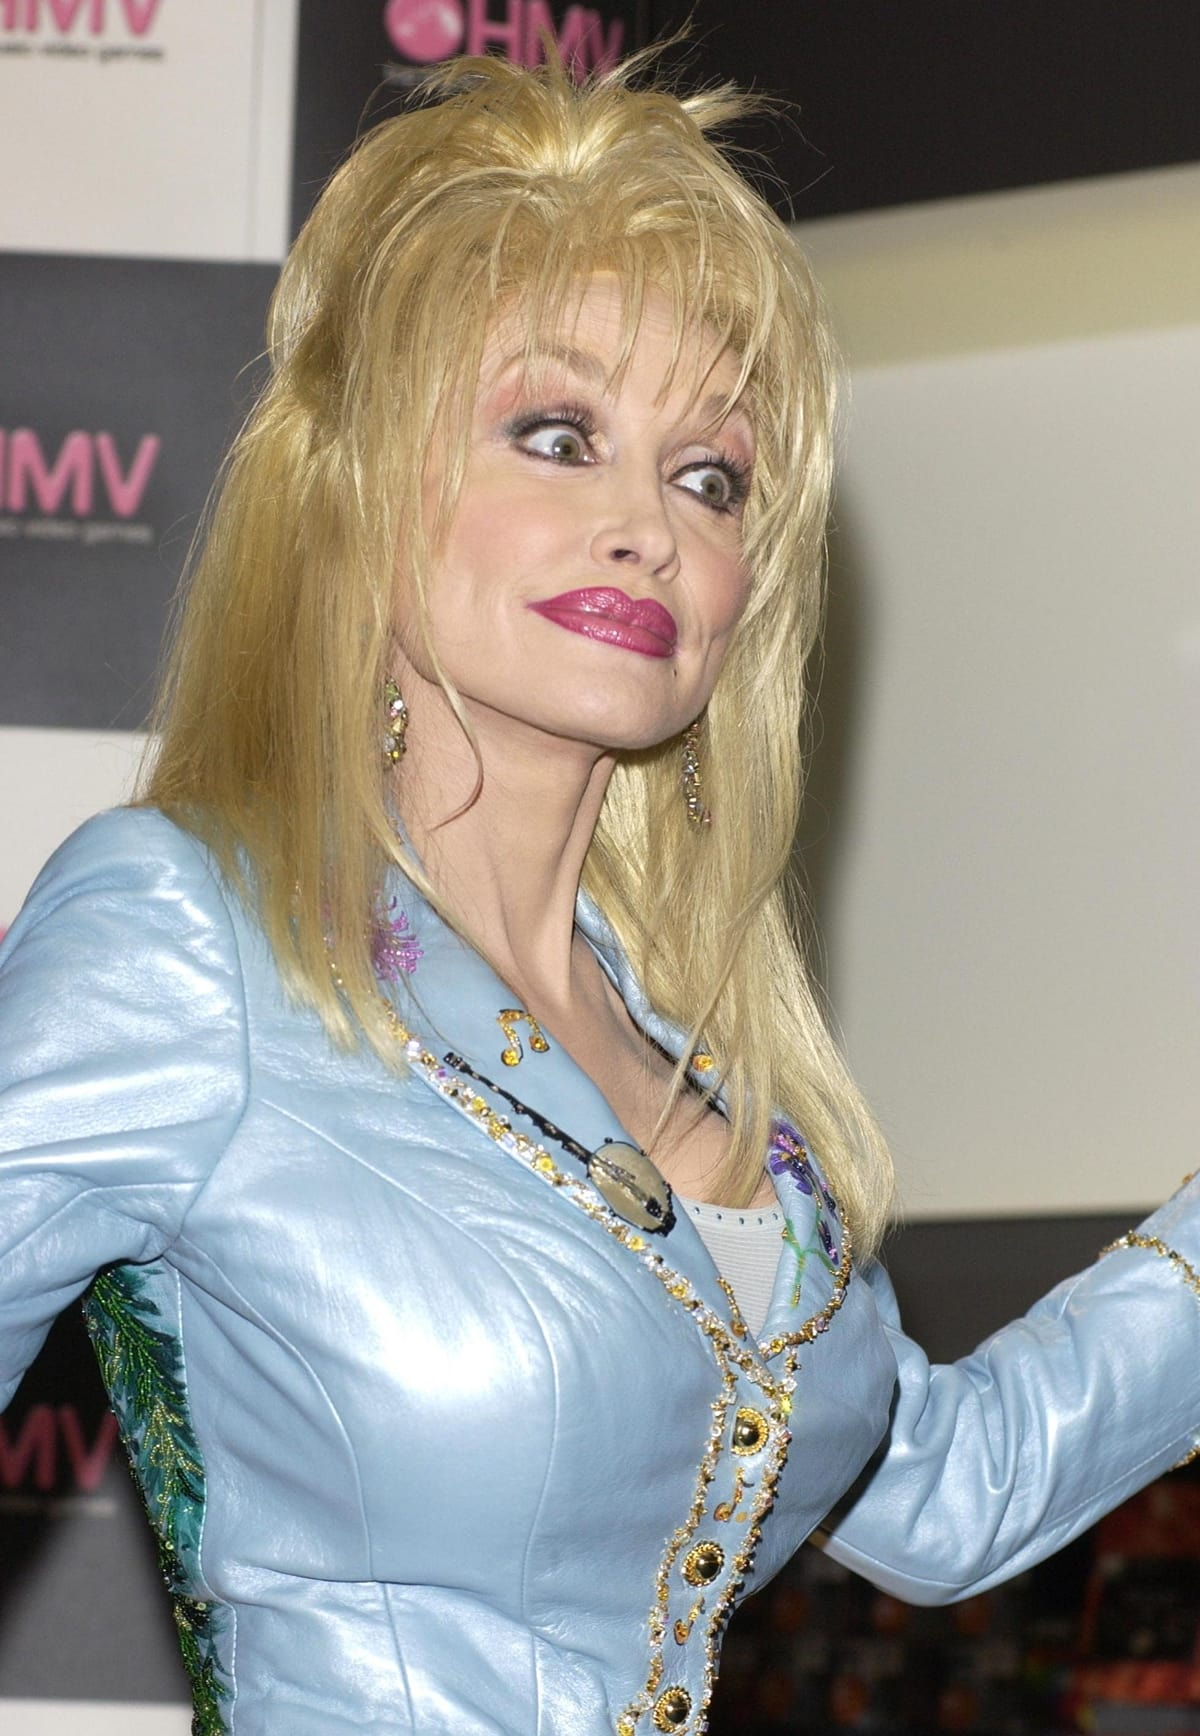 Singer Dolly Parton highlights her boobs while promoting her new album Halos and Horns